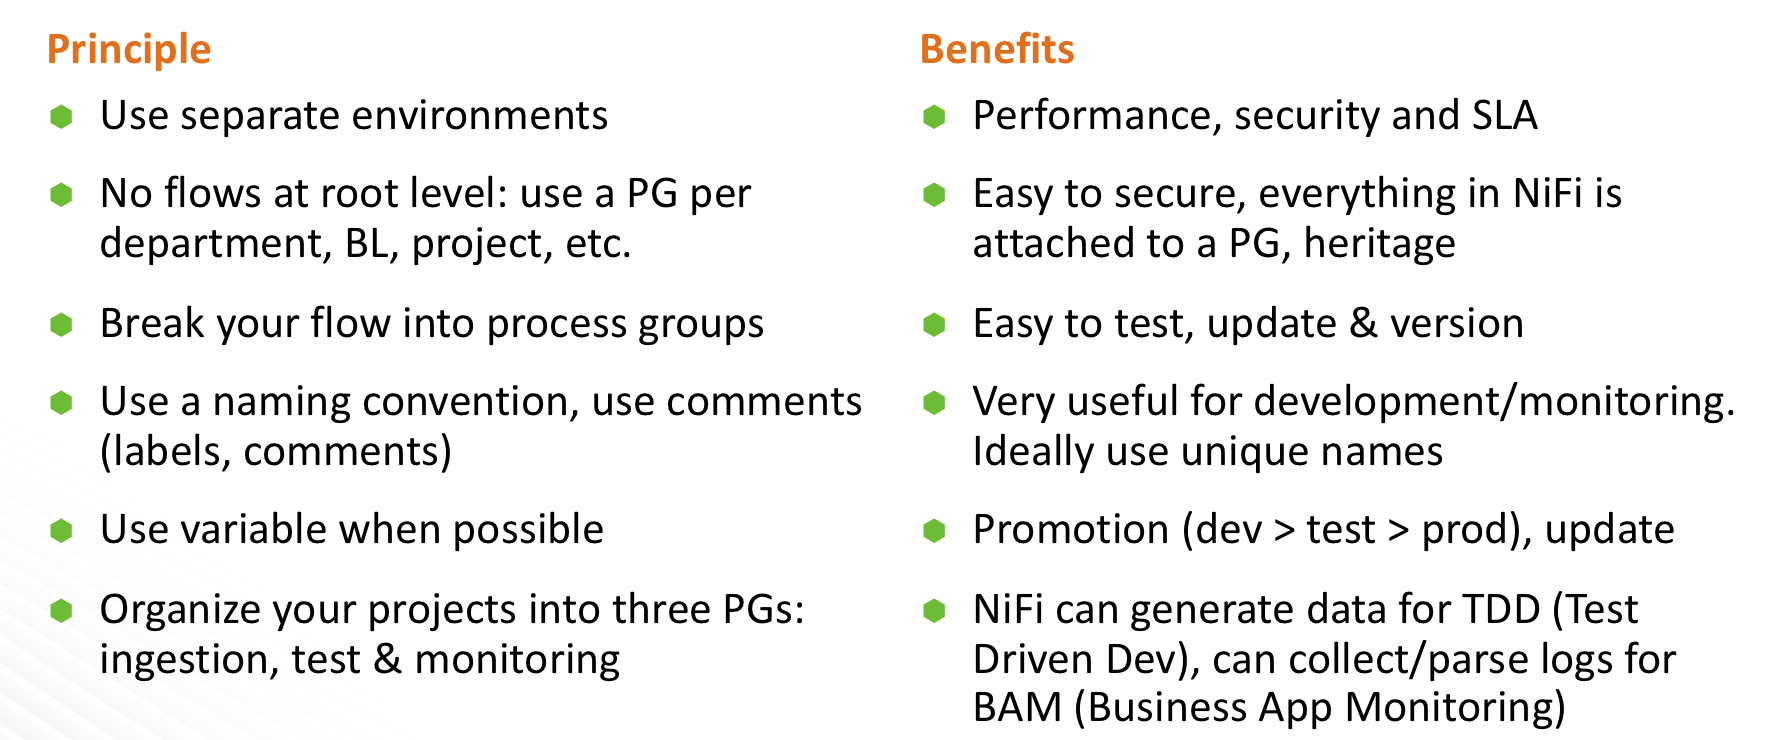 What is the best use case for Apache Nifi? - Quora